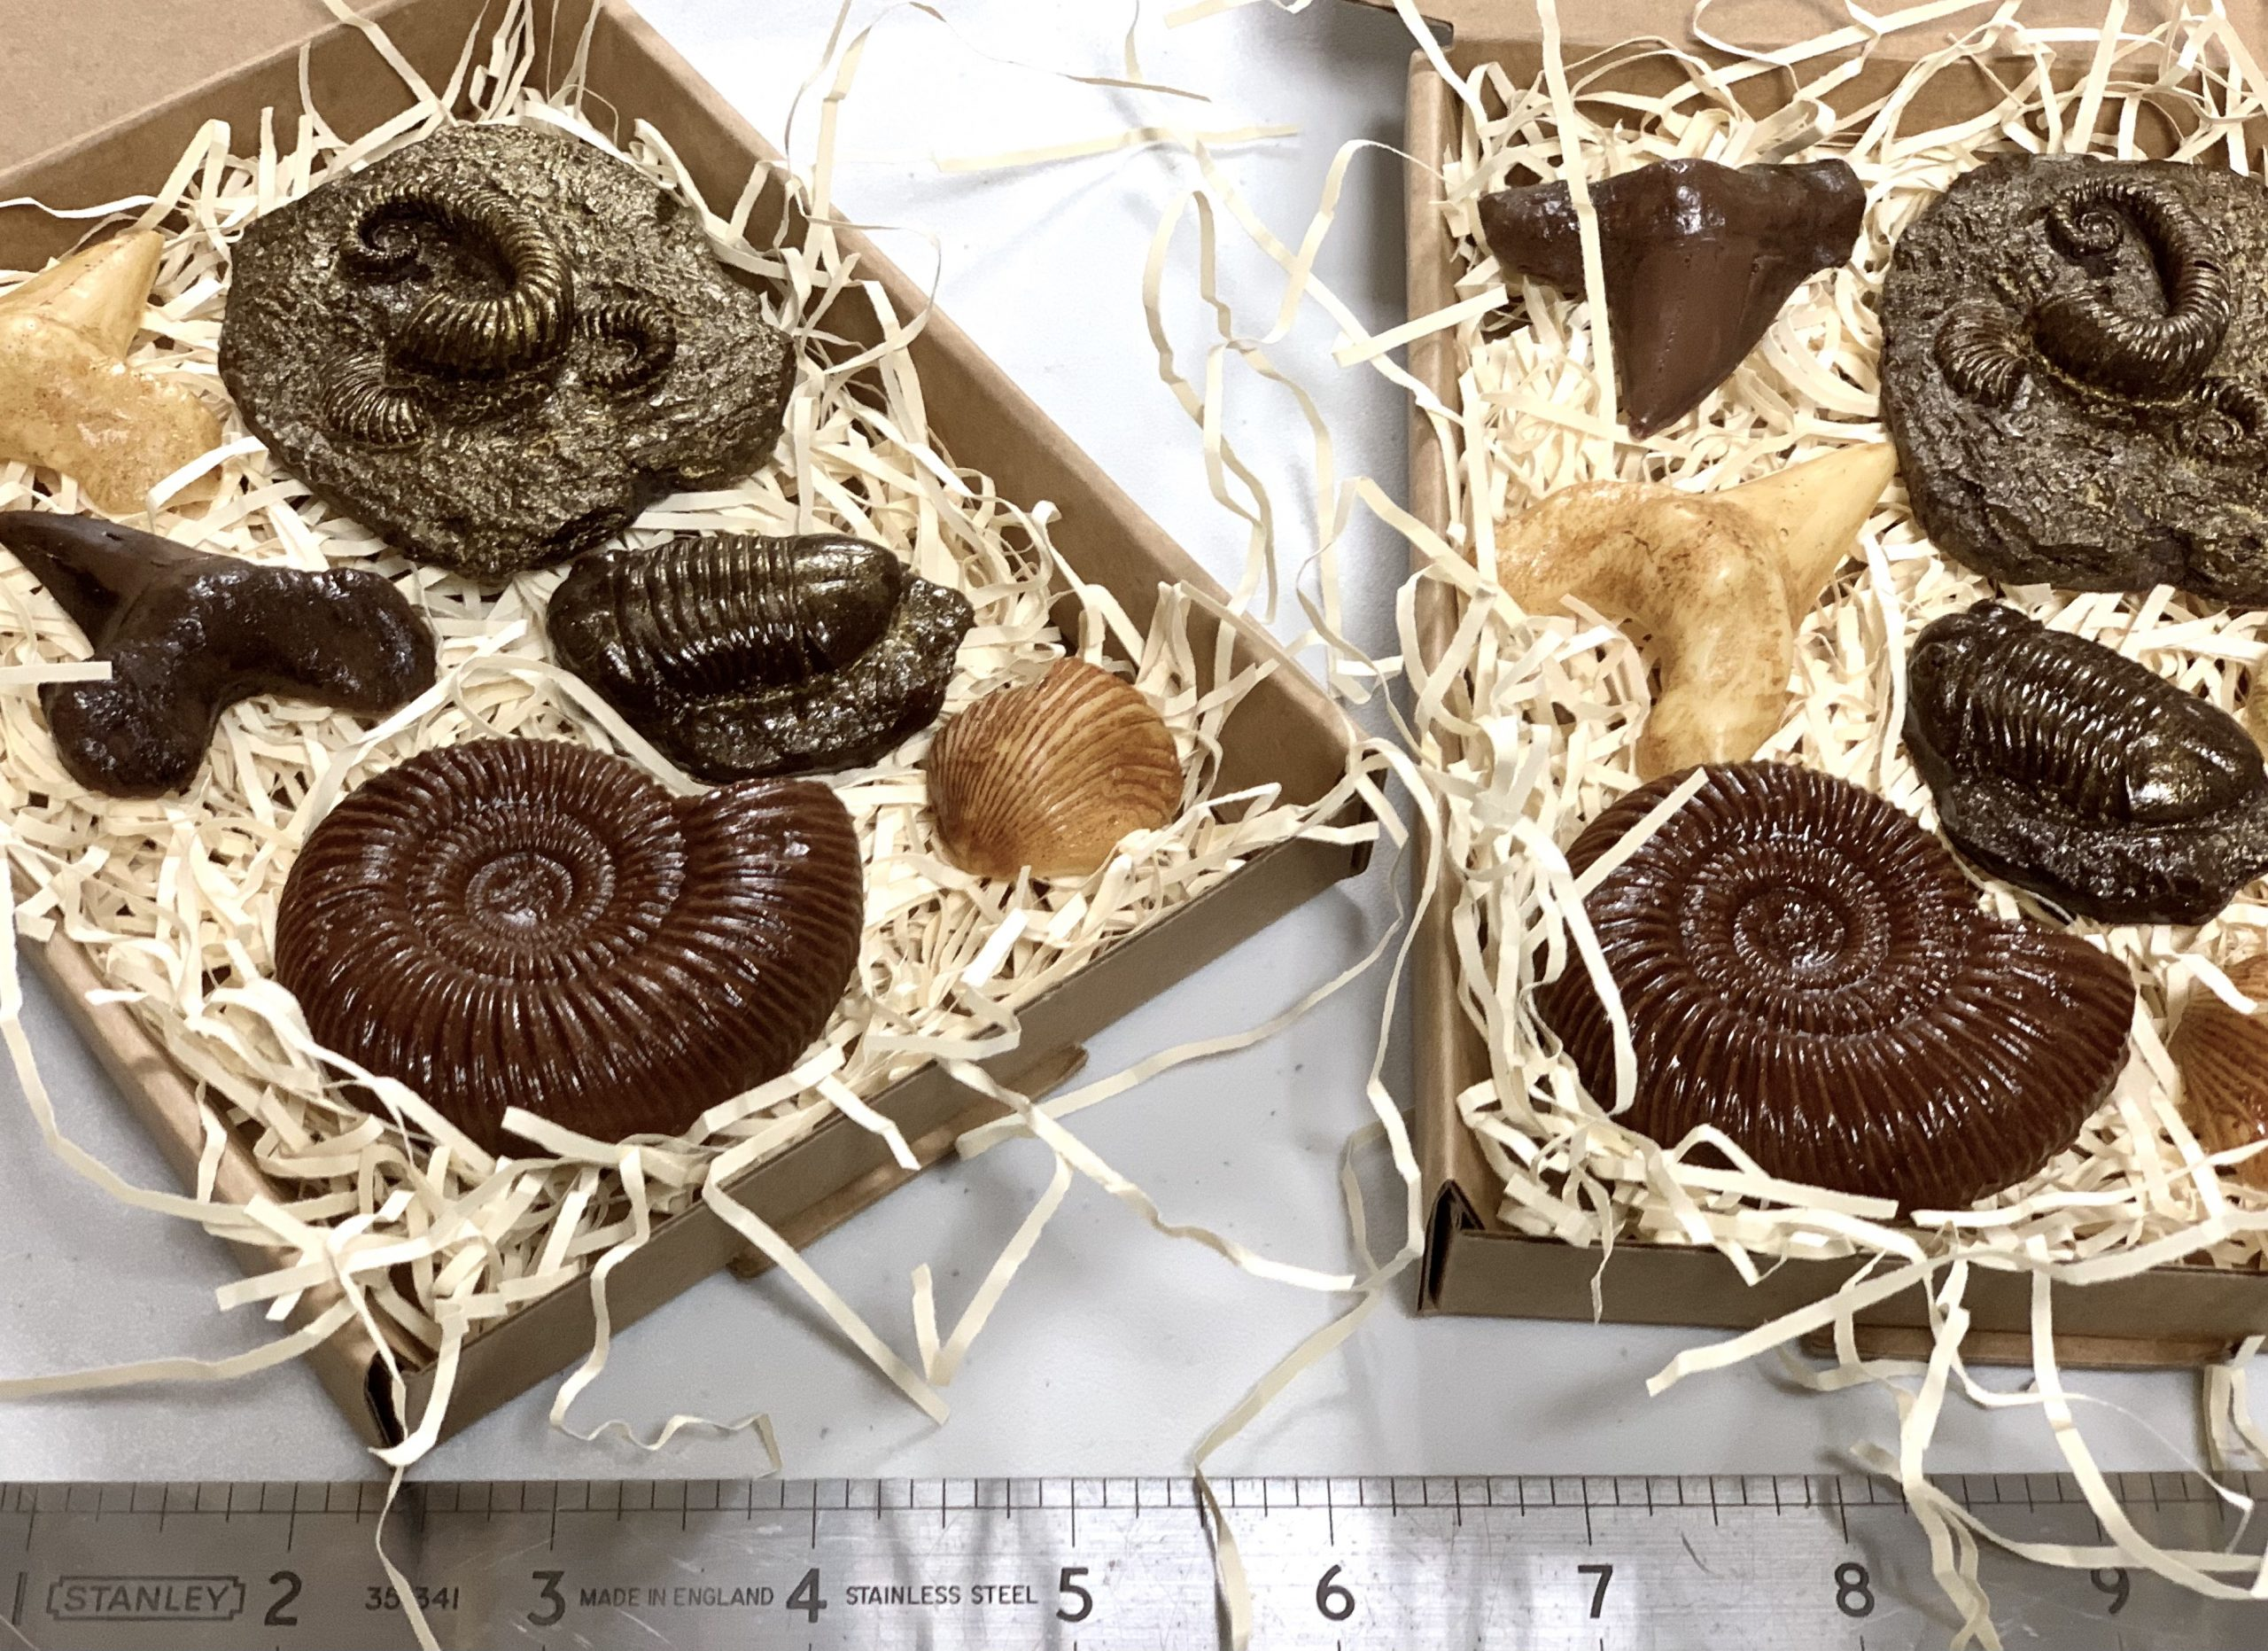 Edible fossils